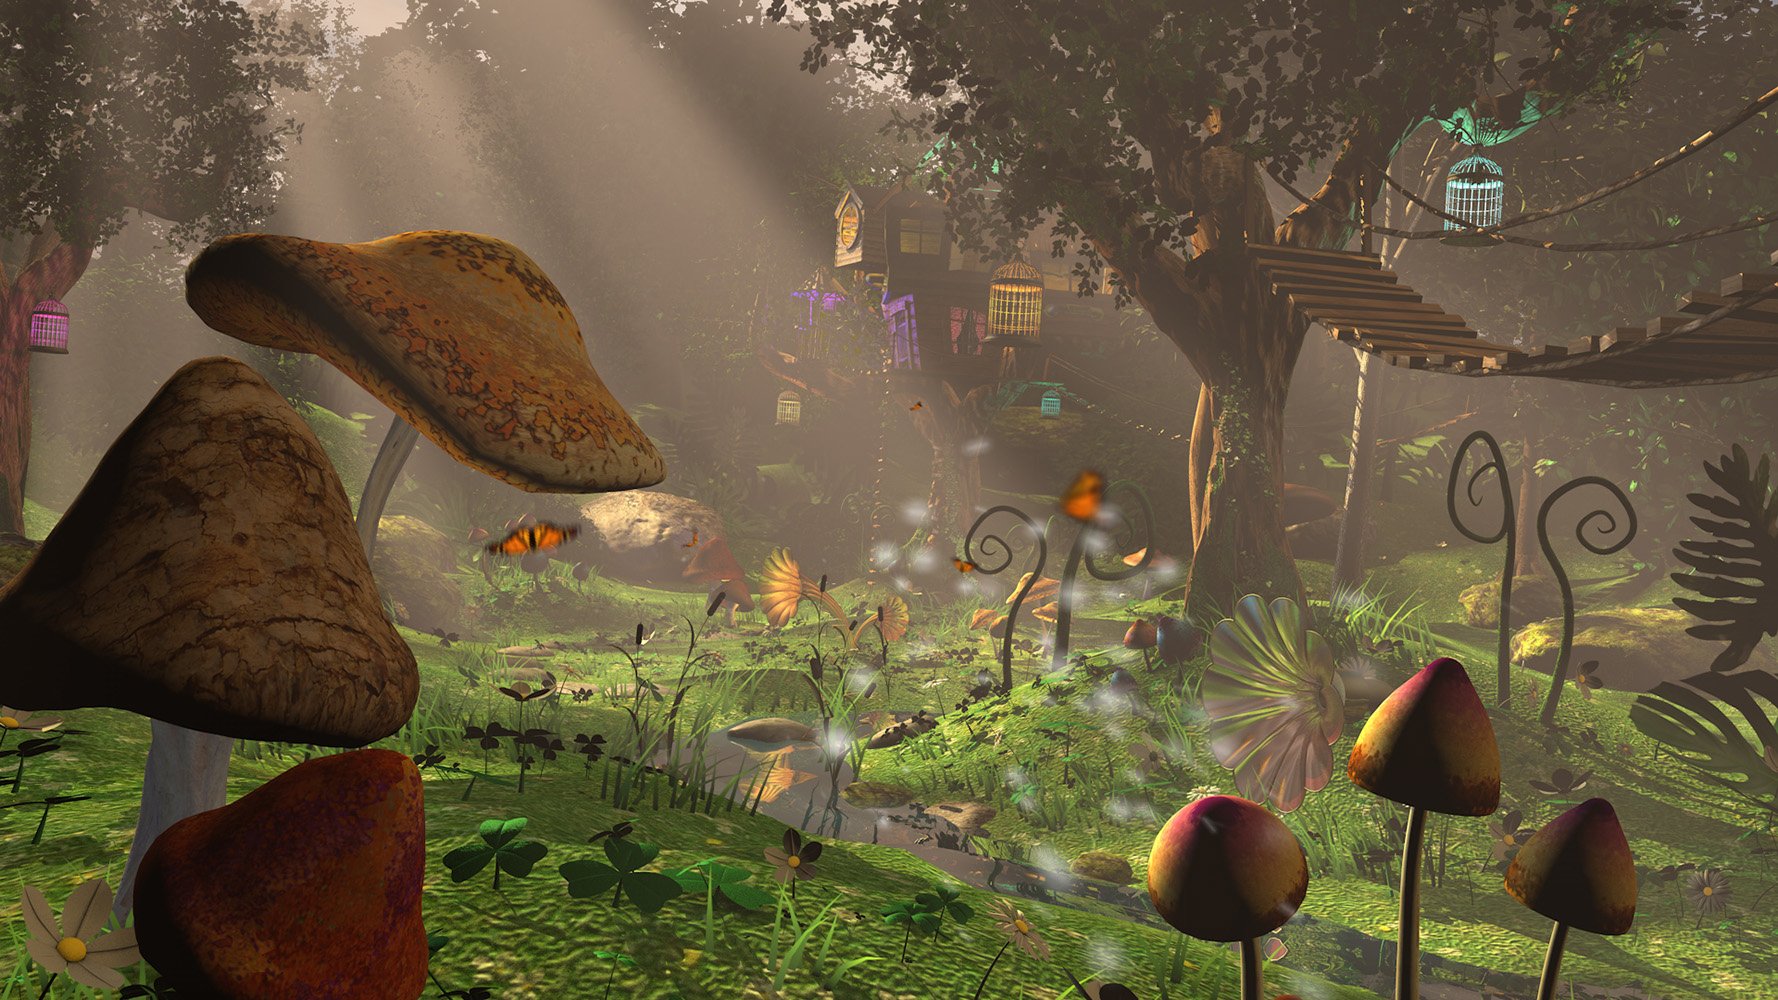 Altered TV motion graphics studio, London, crystal CG 3d render Club Disney magical forest